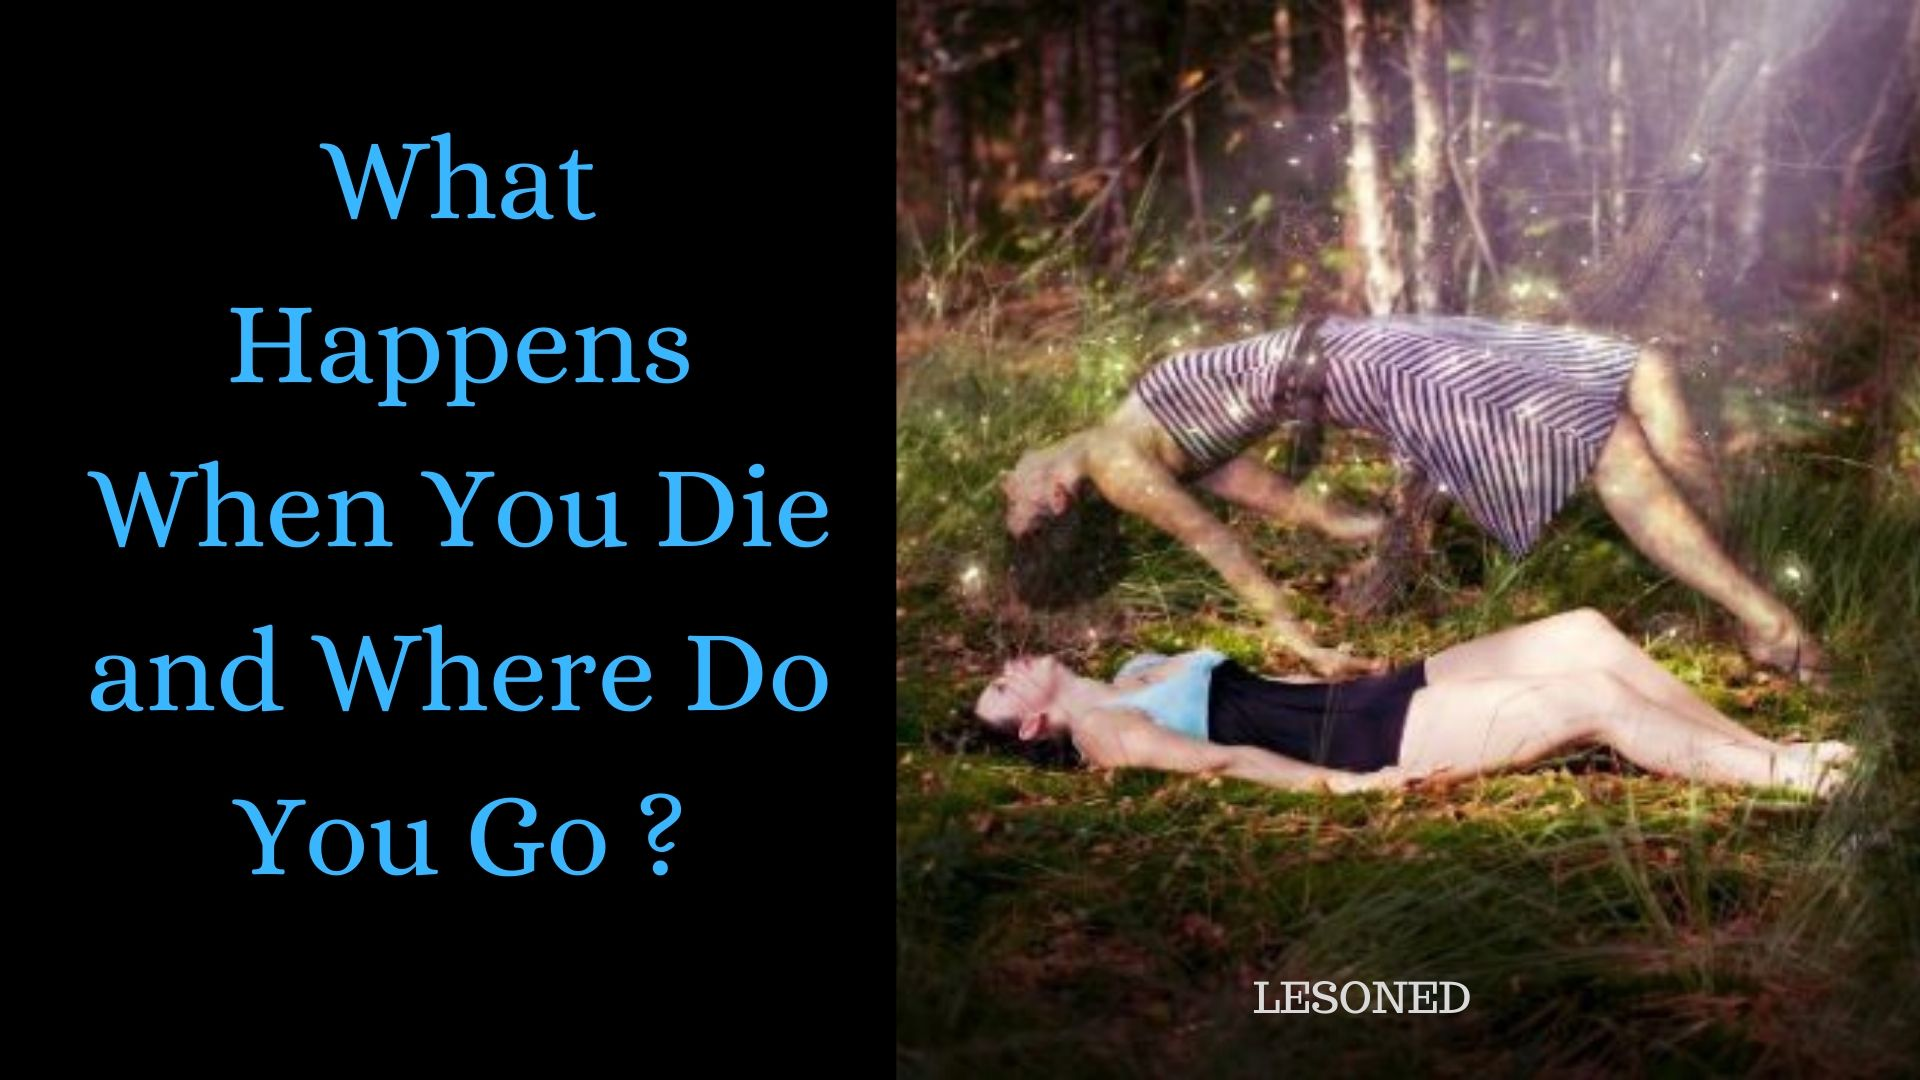 What Happens When You Die and Where Do You Go?